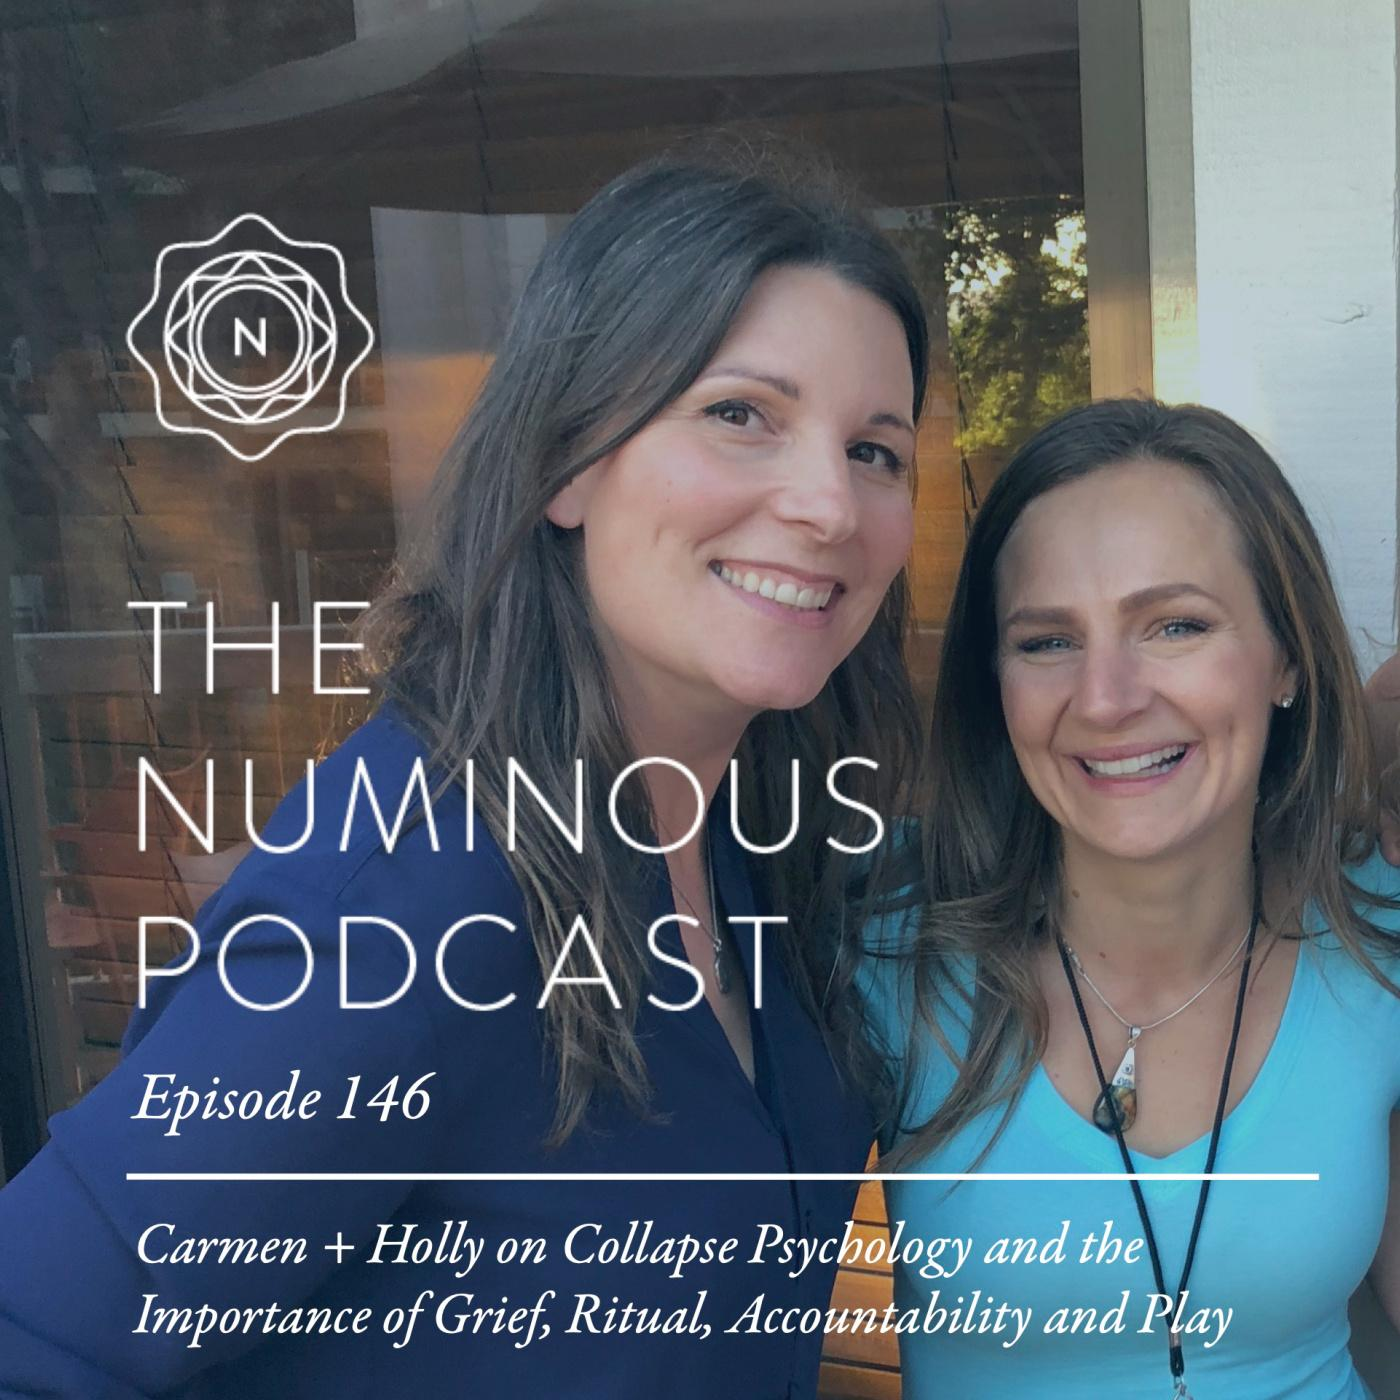 TNP146 Carmen + Holly on Collapse Psychology and the Importance of Grief Ritual Accountability and Play